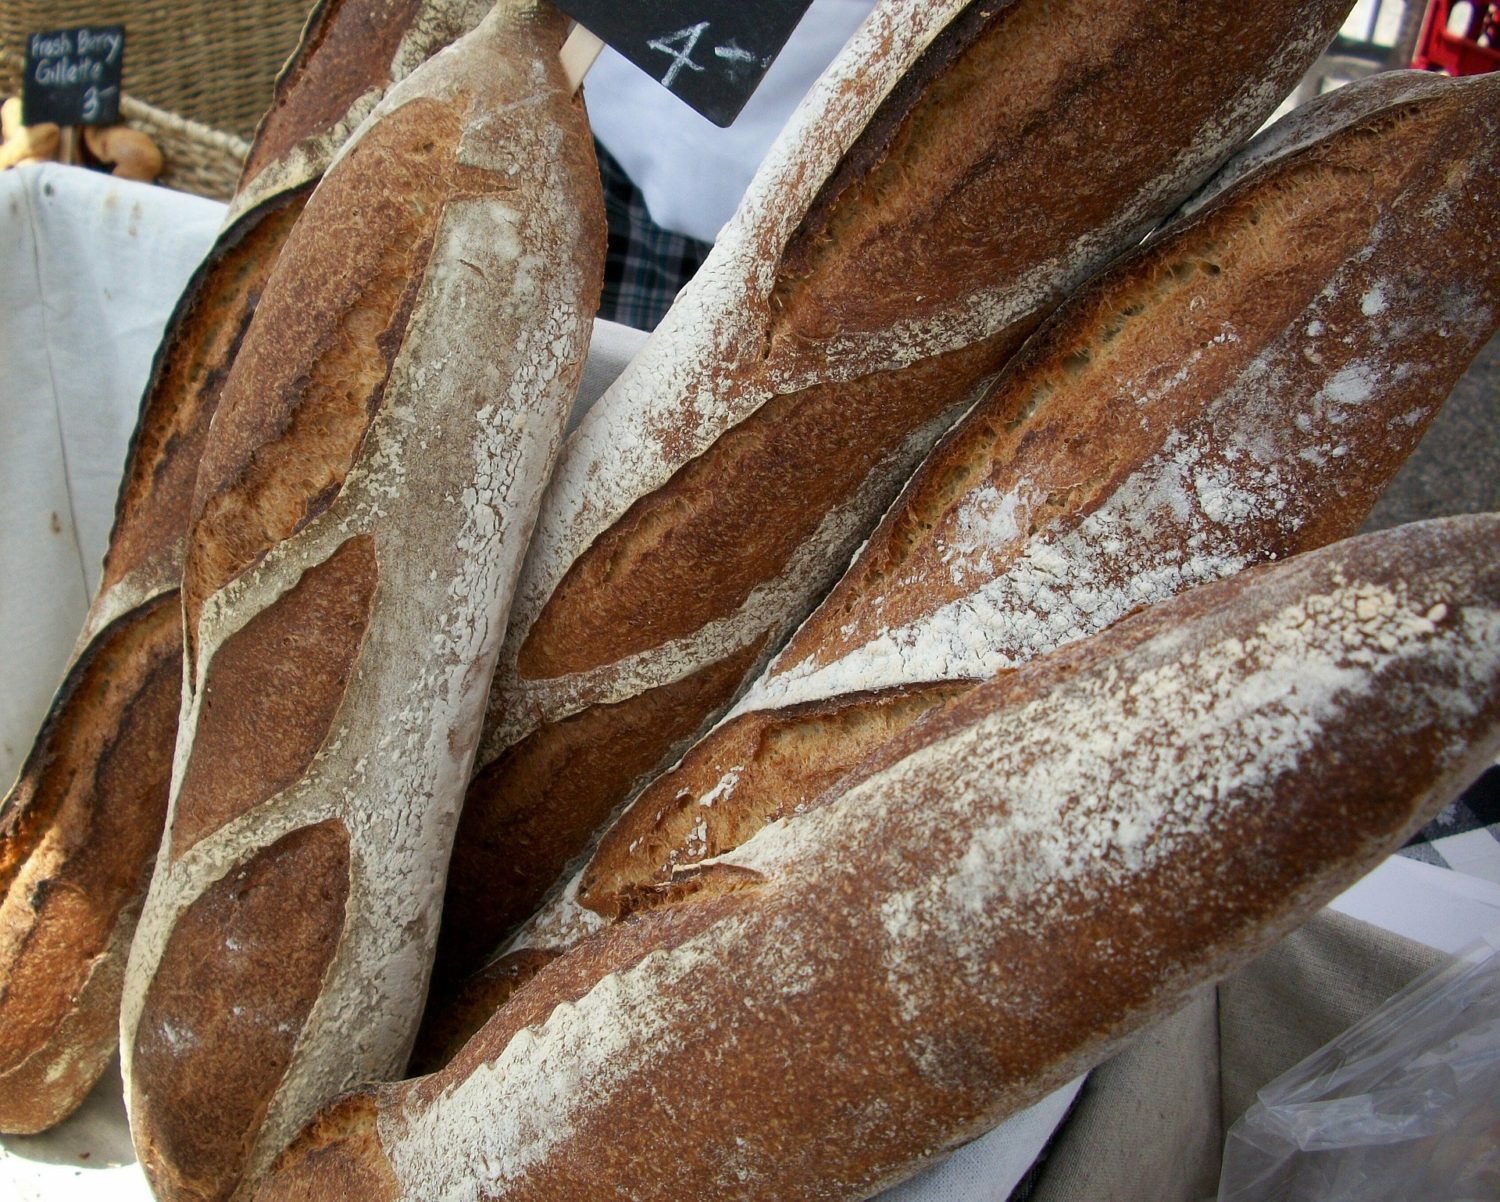 Were 'Bladed Weapons' Discovered in Baguettes During Riots in France?